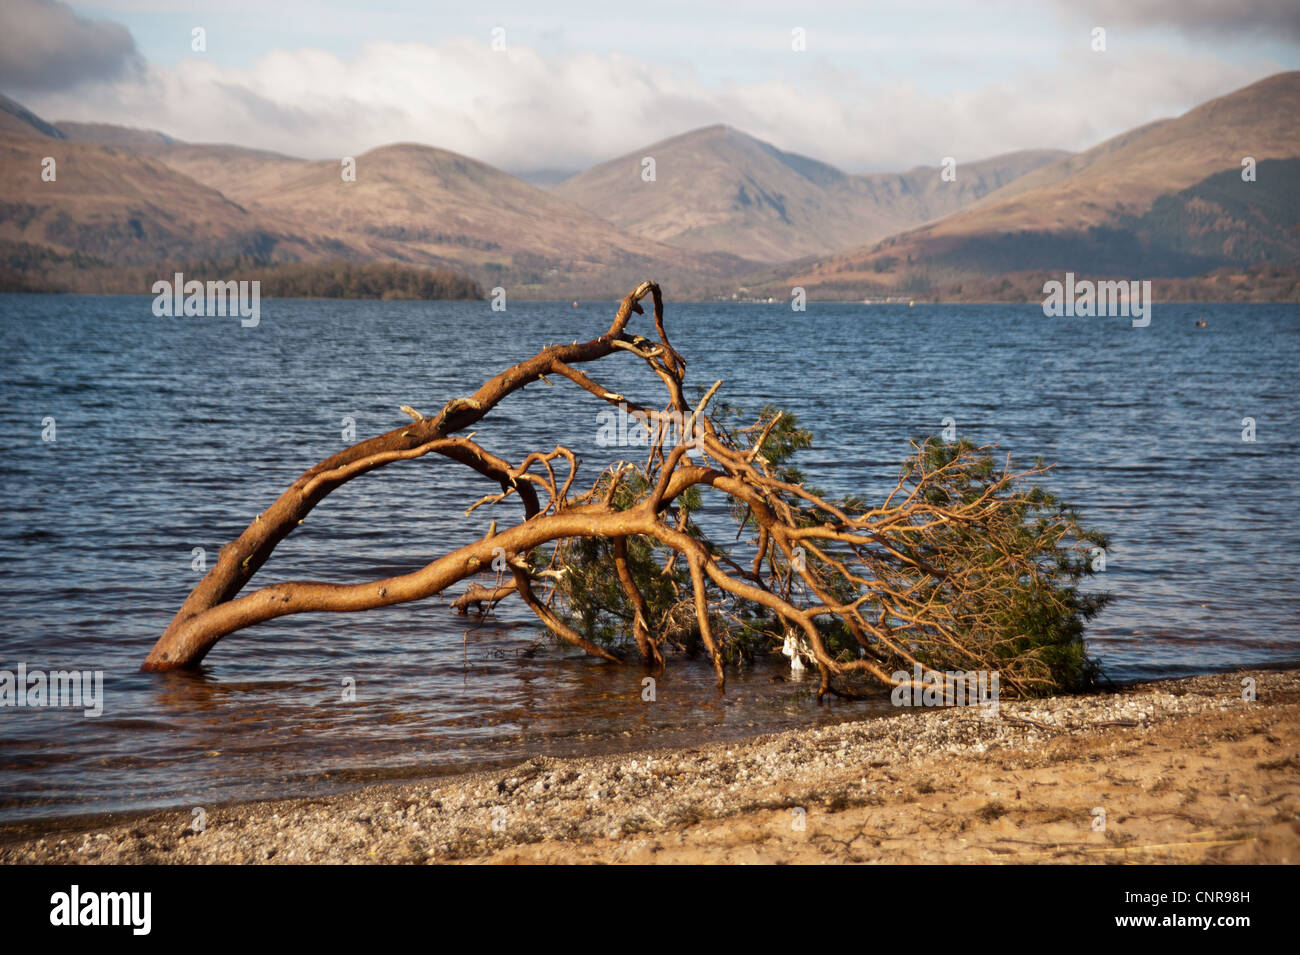 A fallen tree on the shore of Loch Lomond along the West Highland Way in Scotland Stock Photo